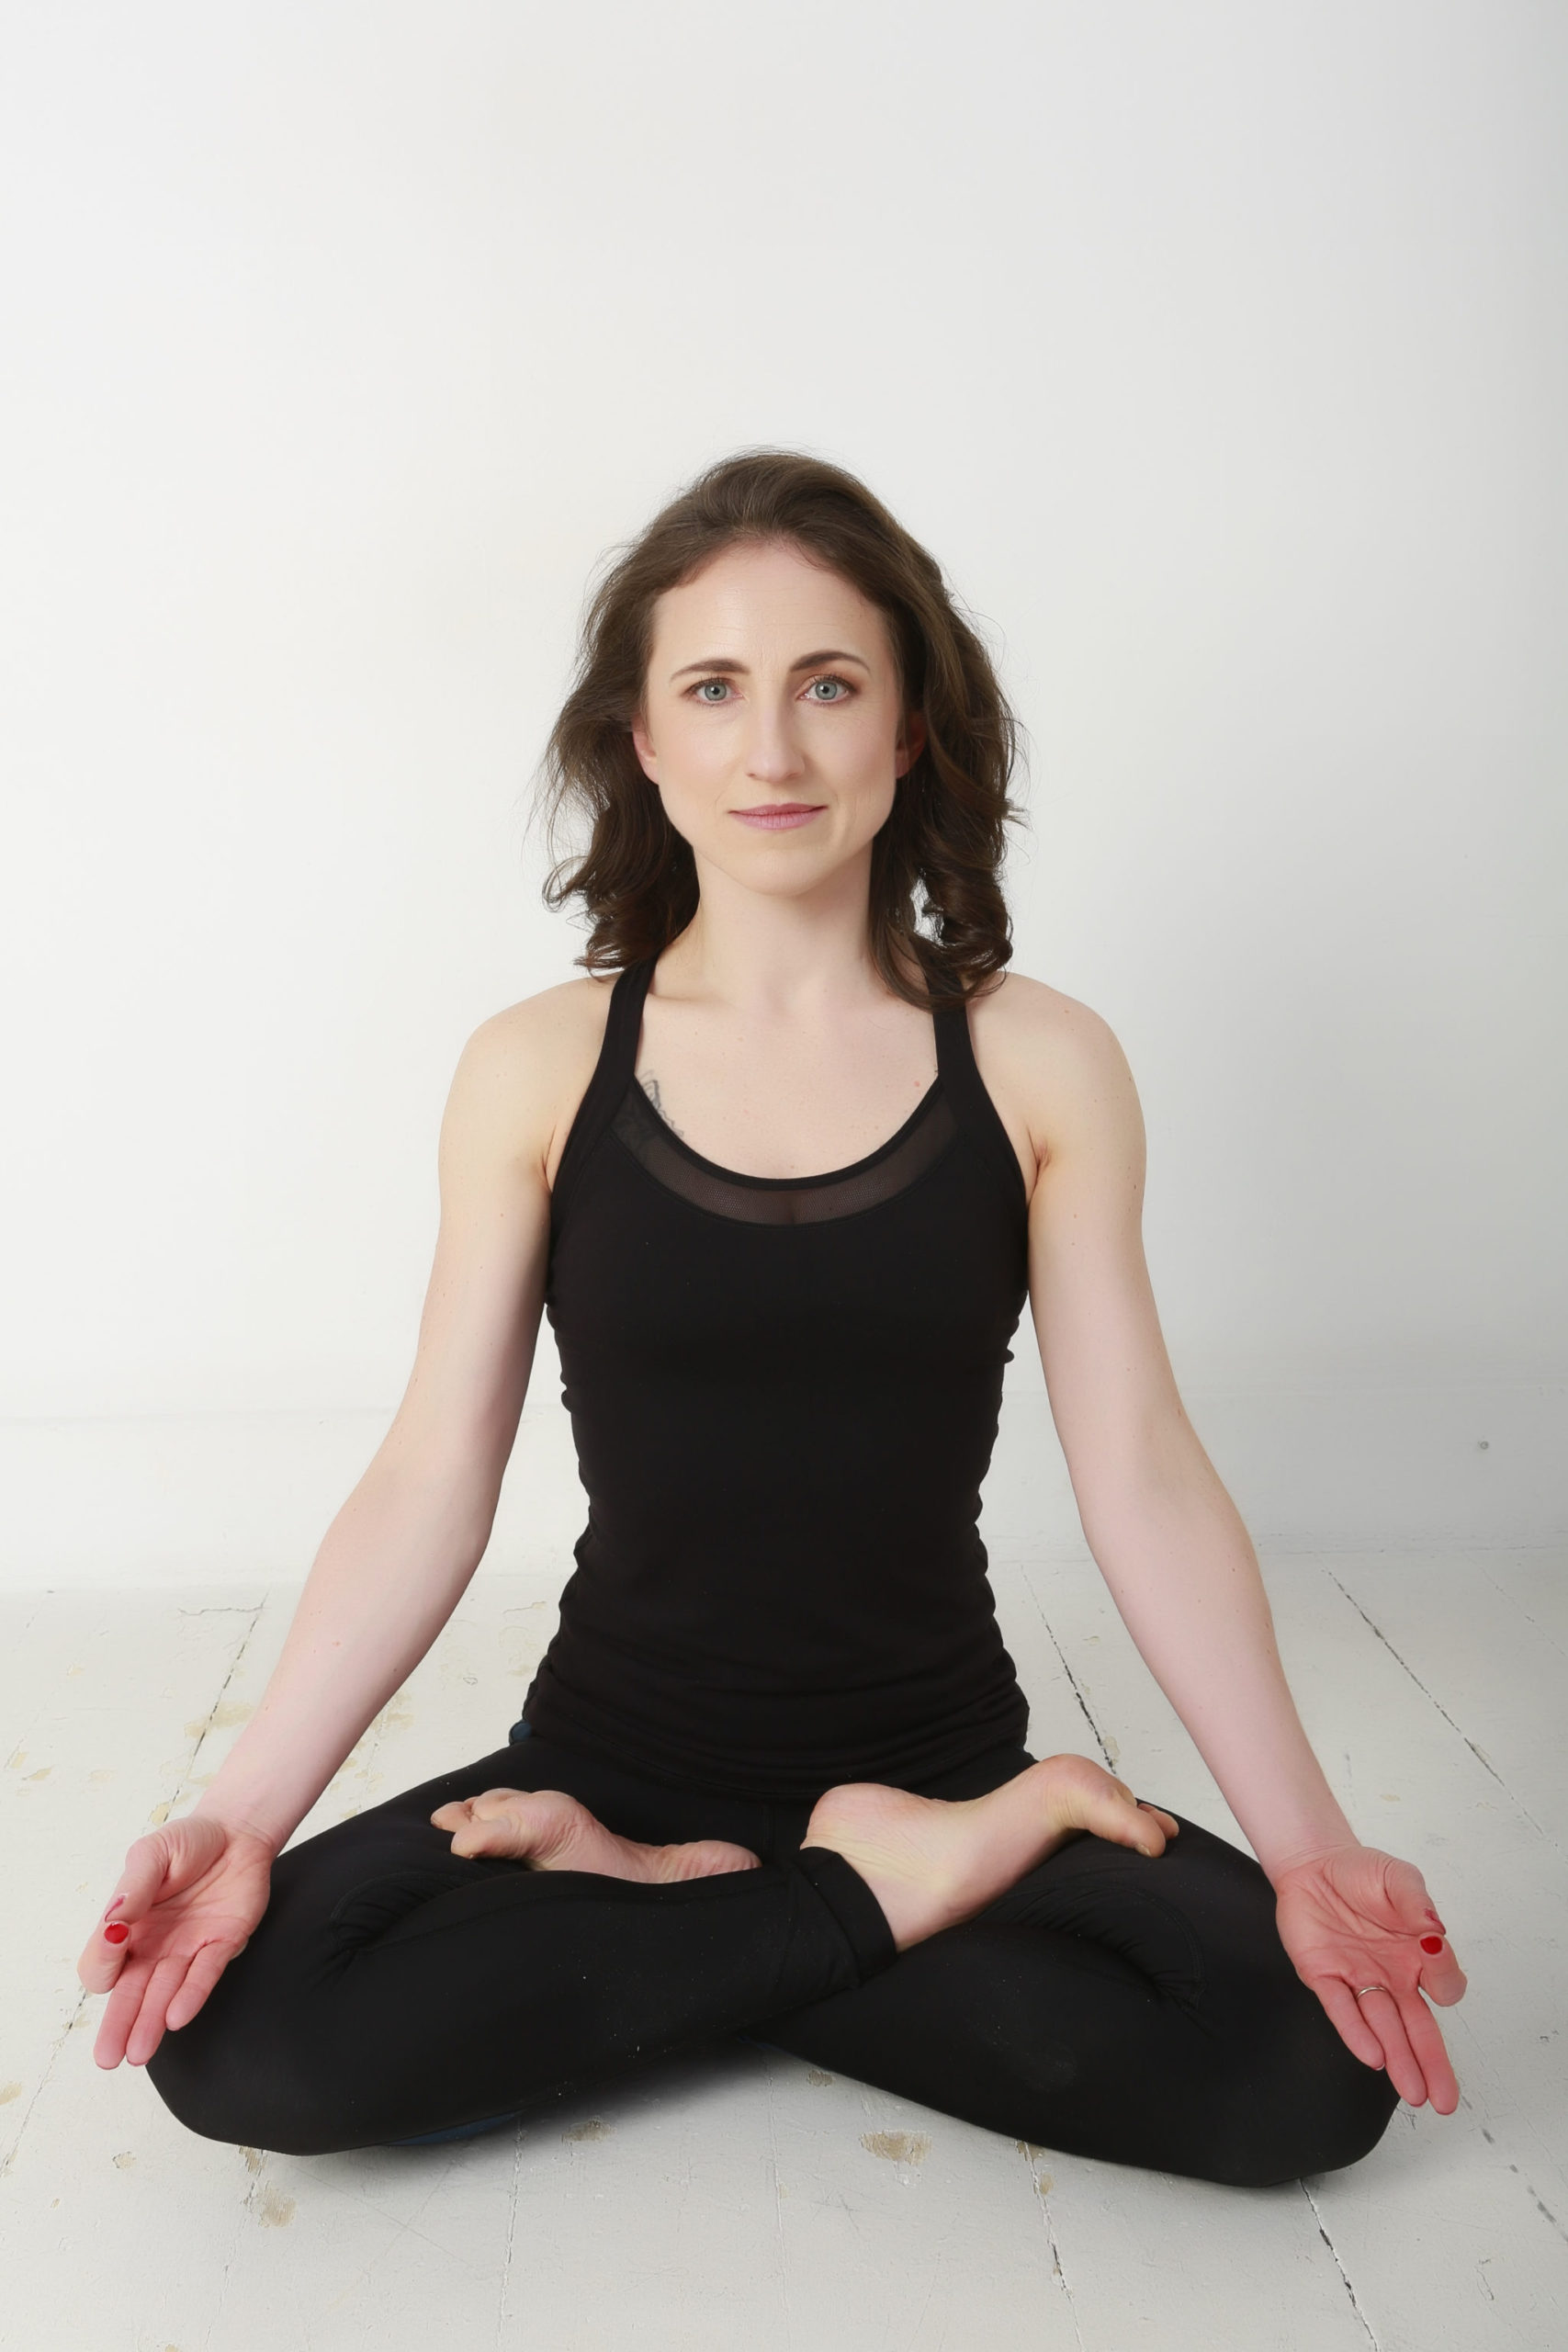 Giovina yoga in The New Healthy with May Simpkin